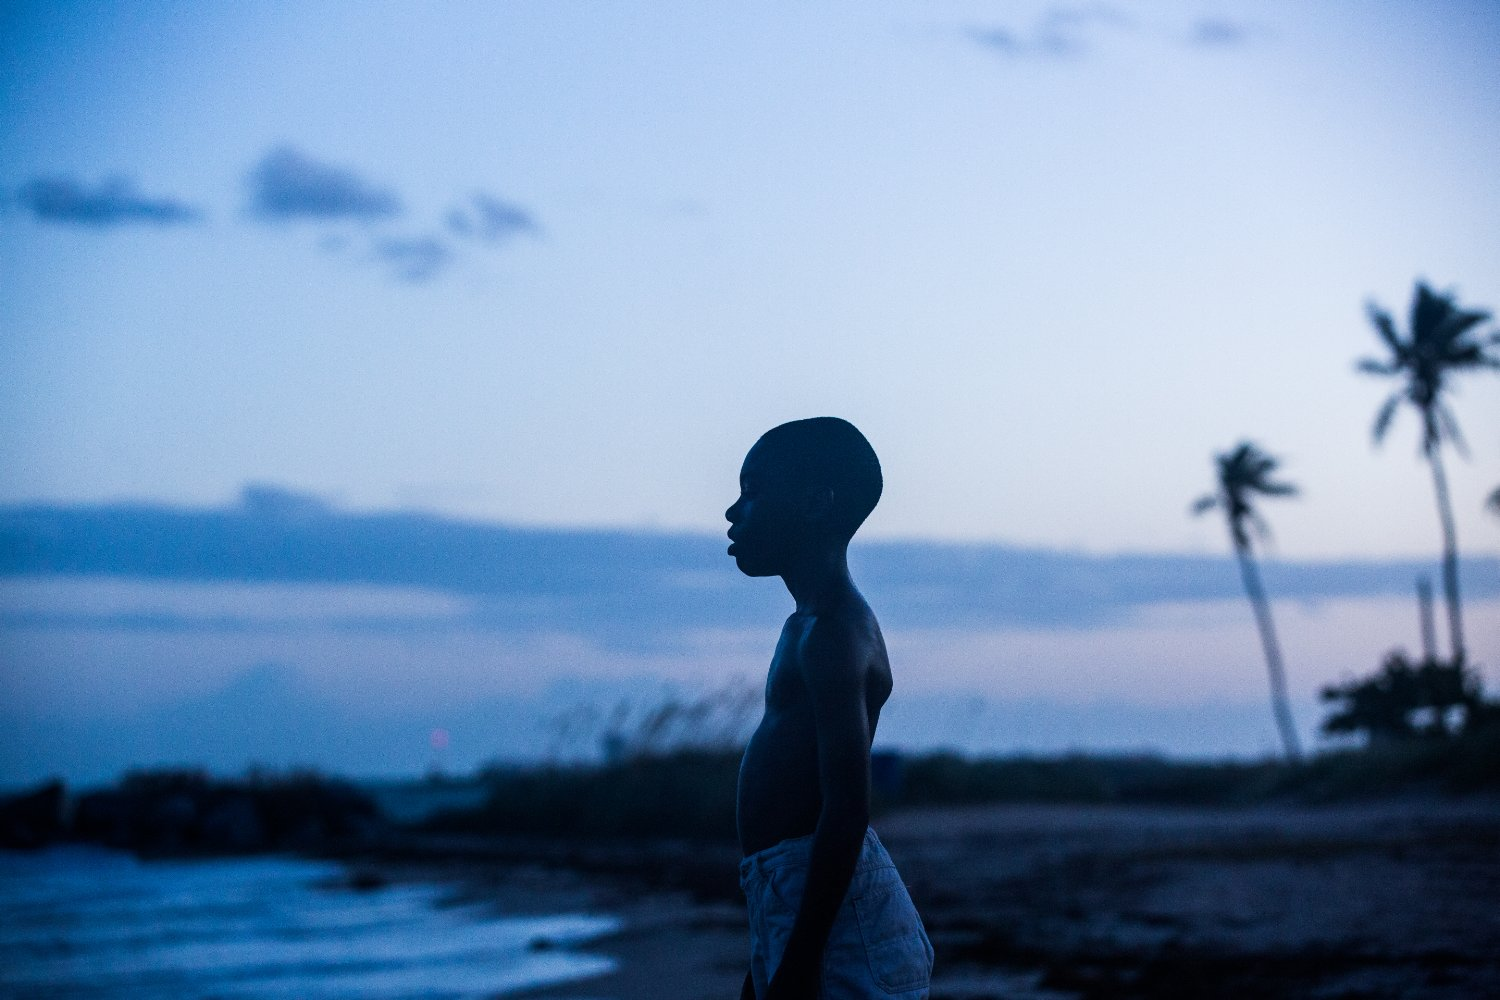 'Moonlight' is an Enchanting Look at the Struggle for a Life Less Ordinary